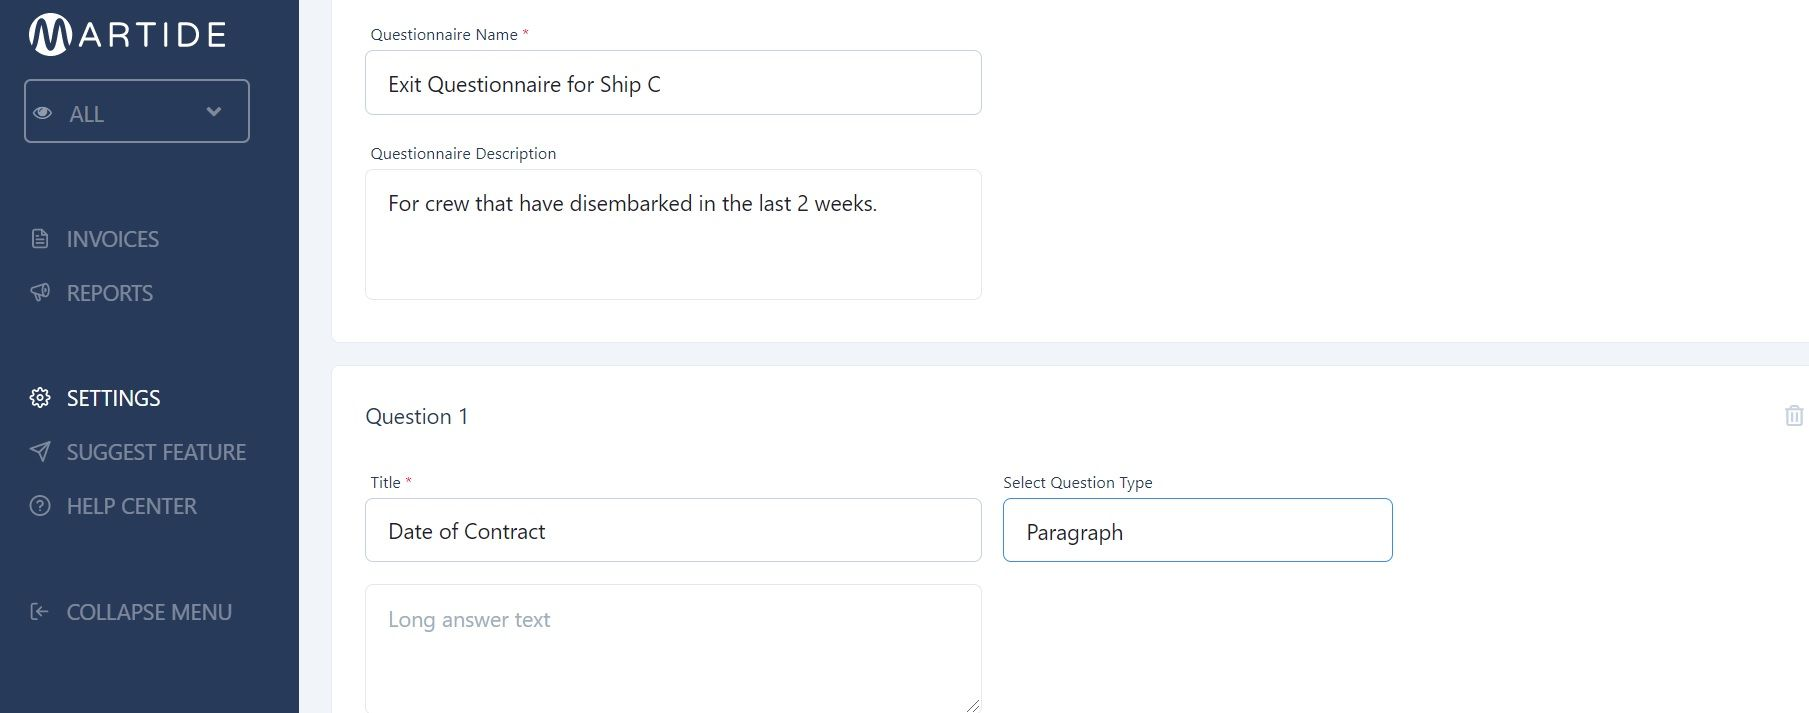 screenshot of the Martide maritime recruitment website showing how to create a questionnaire